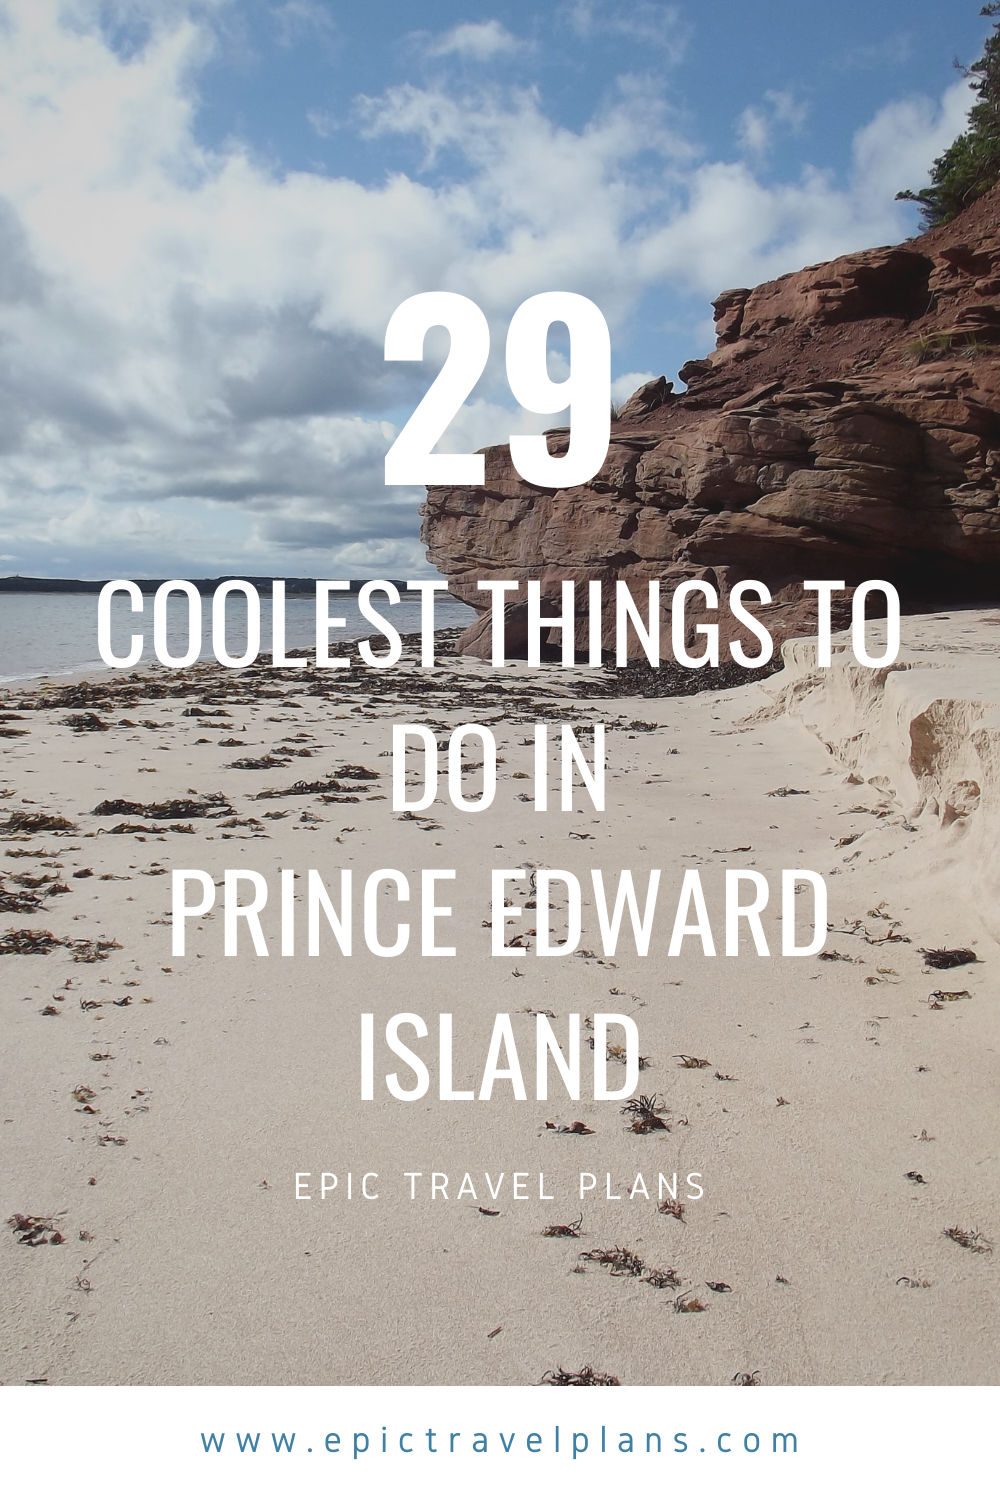 Coolest things to do in Prince Edward Island, Canada